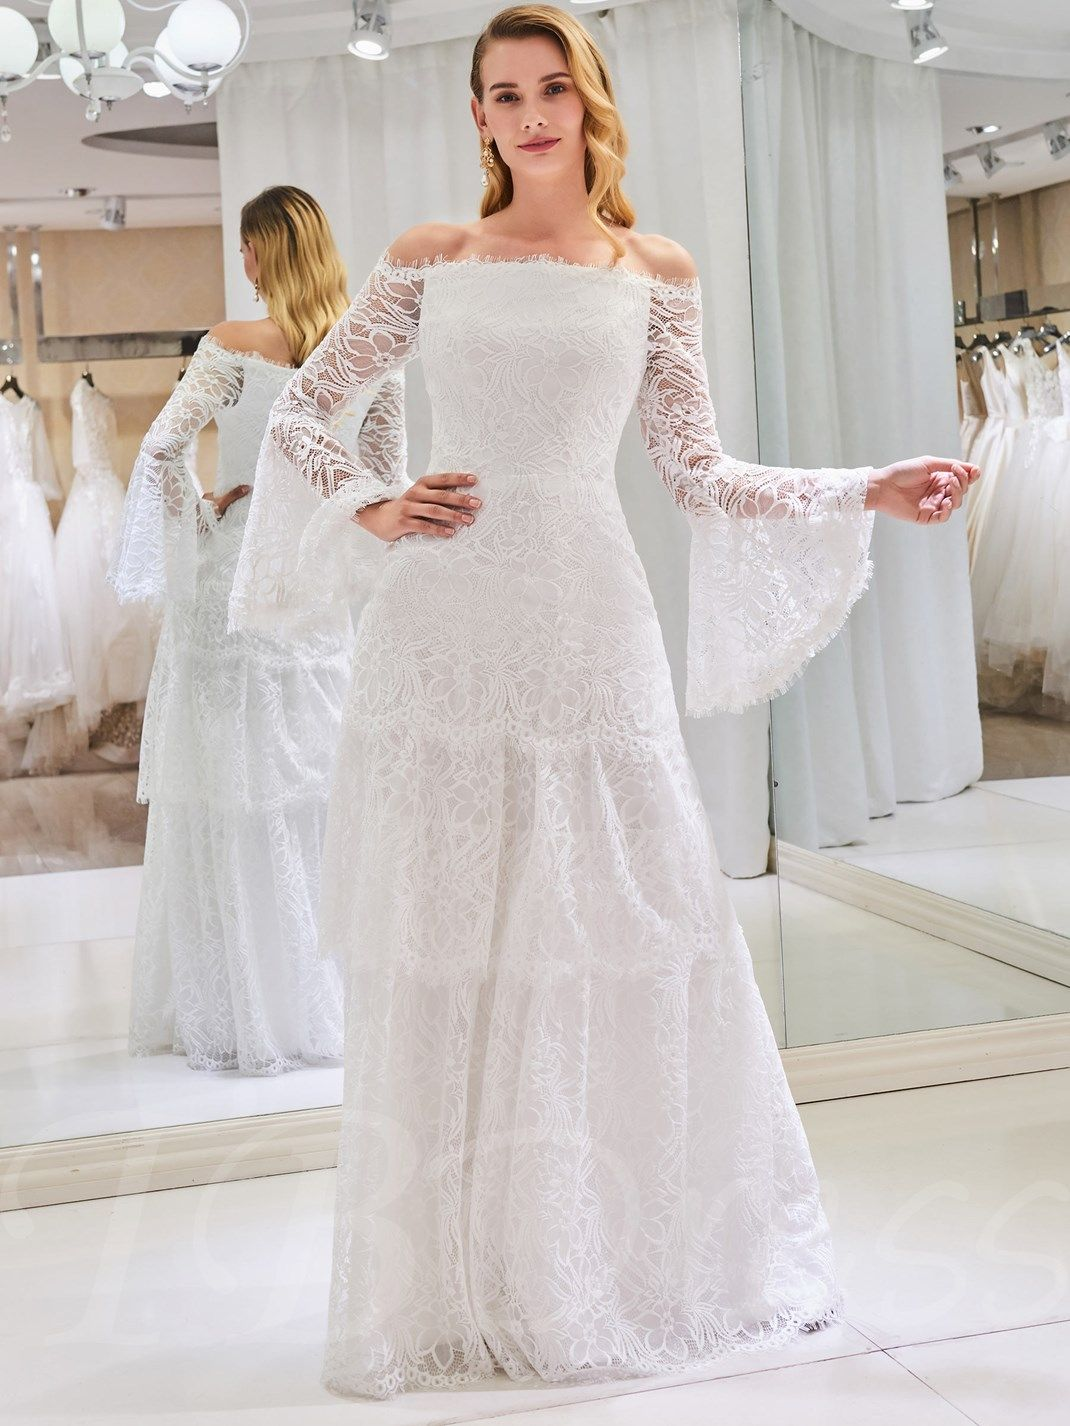 Off the shoulder lace wedding dress with long sleeve in